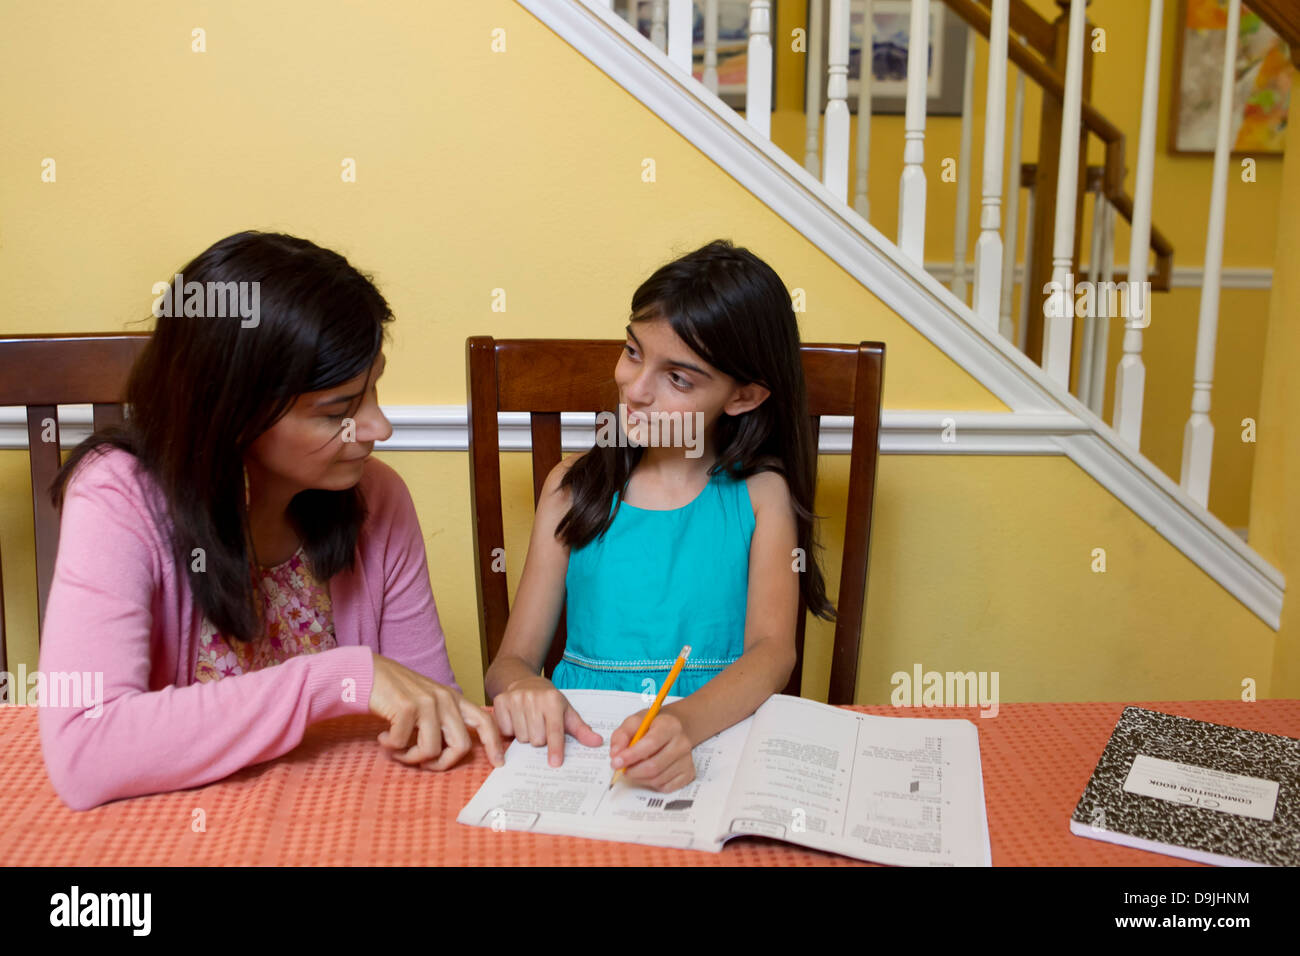 Mexican mother (45 year old) helps her Mexican-American 10 year old daughter with homework. - Stock Image